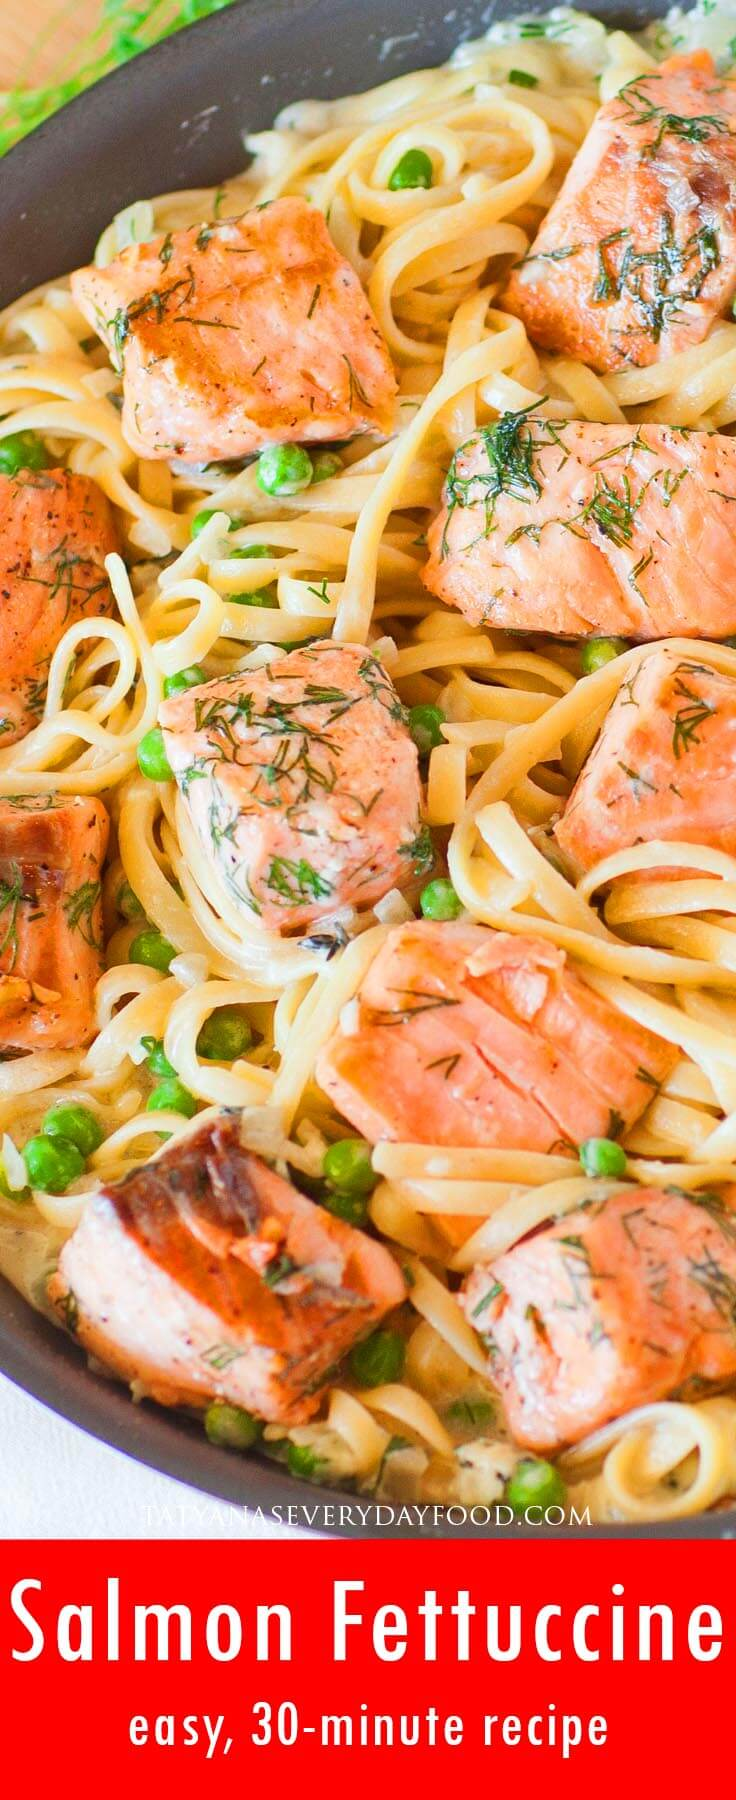 Easy Salmon Fettuccine video recipe